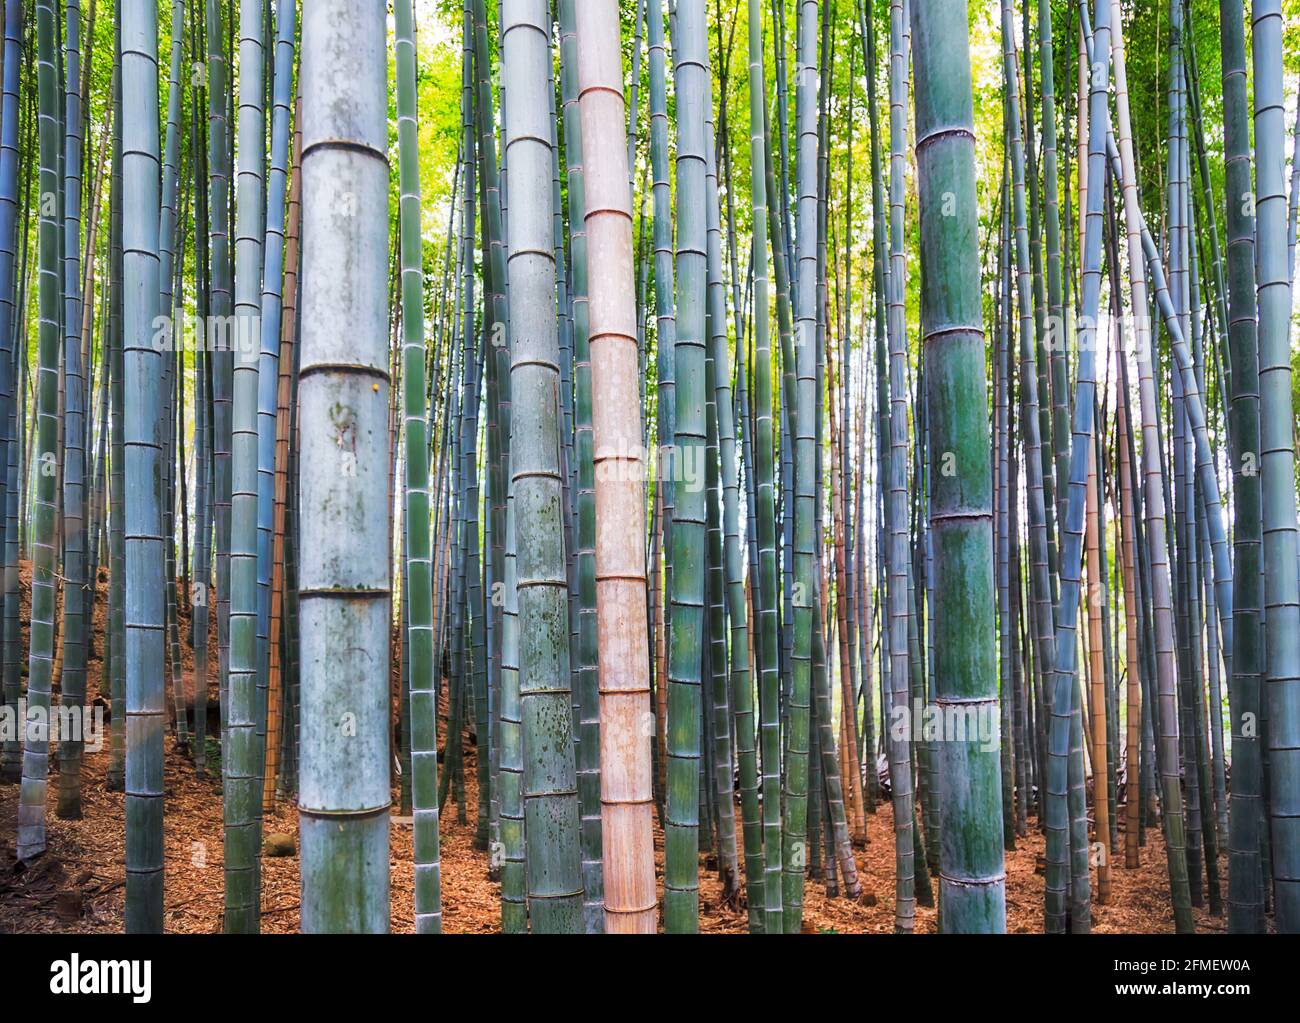 Low section of Bamboo plants in natural bamboo forest - Arashiyama grove of Kyoto city, Japan. Stock Photo